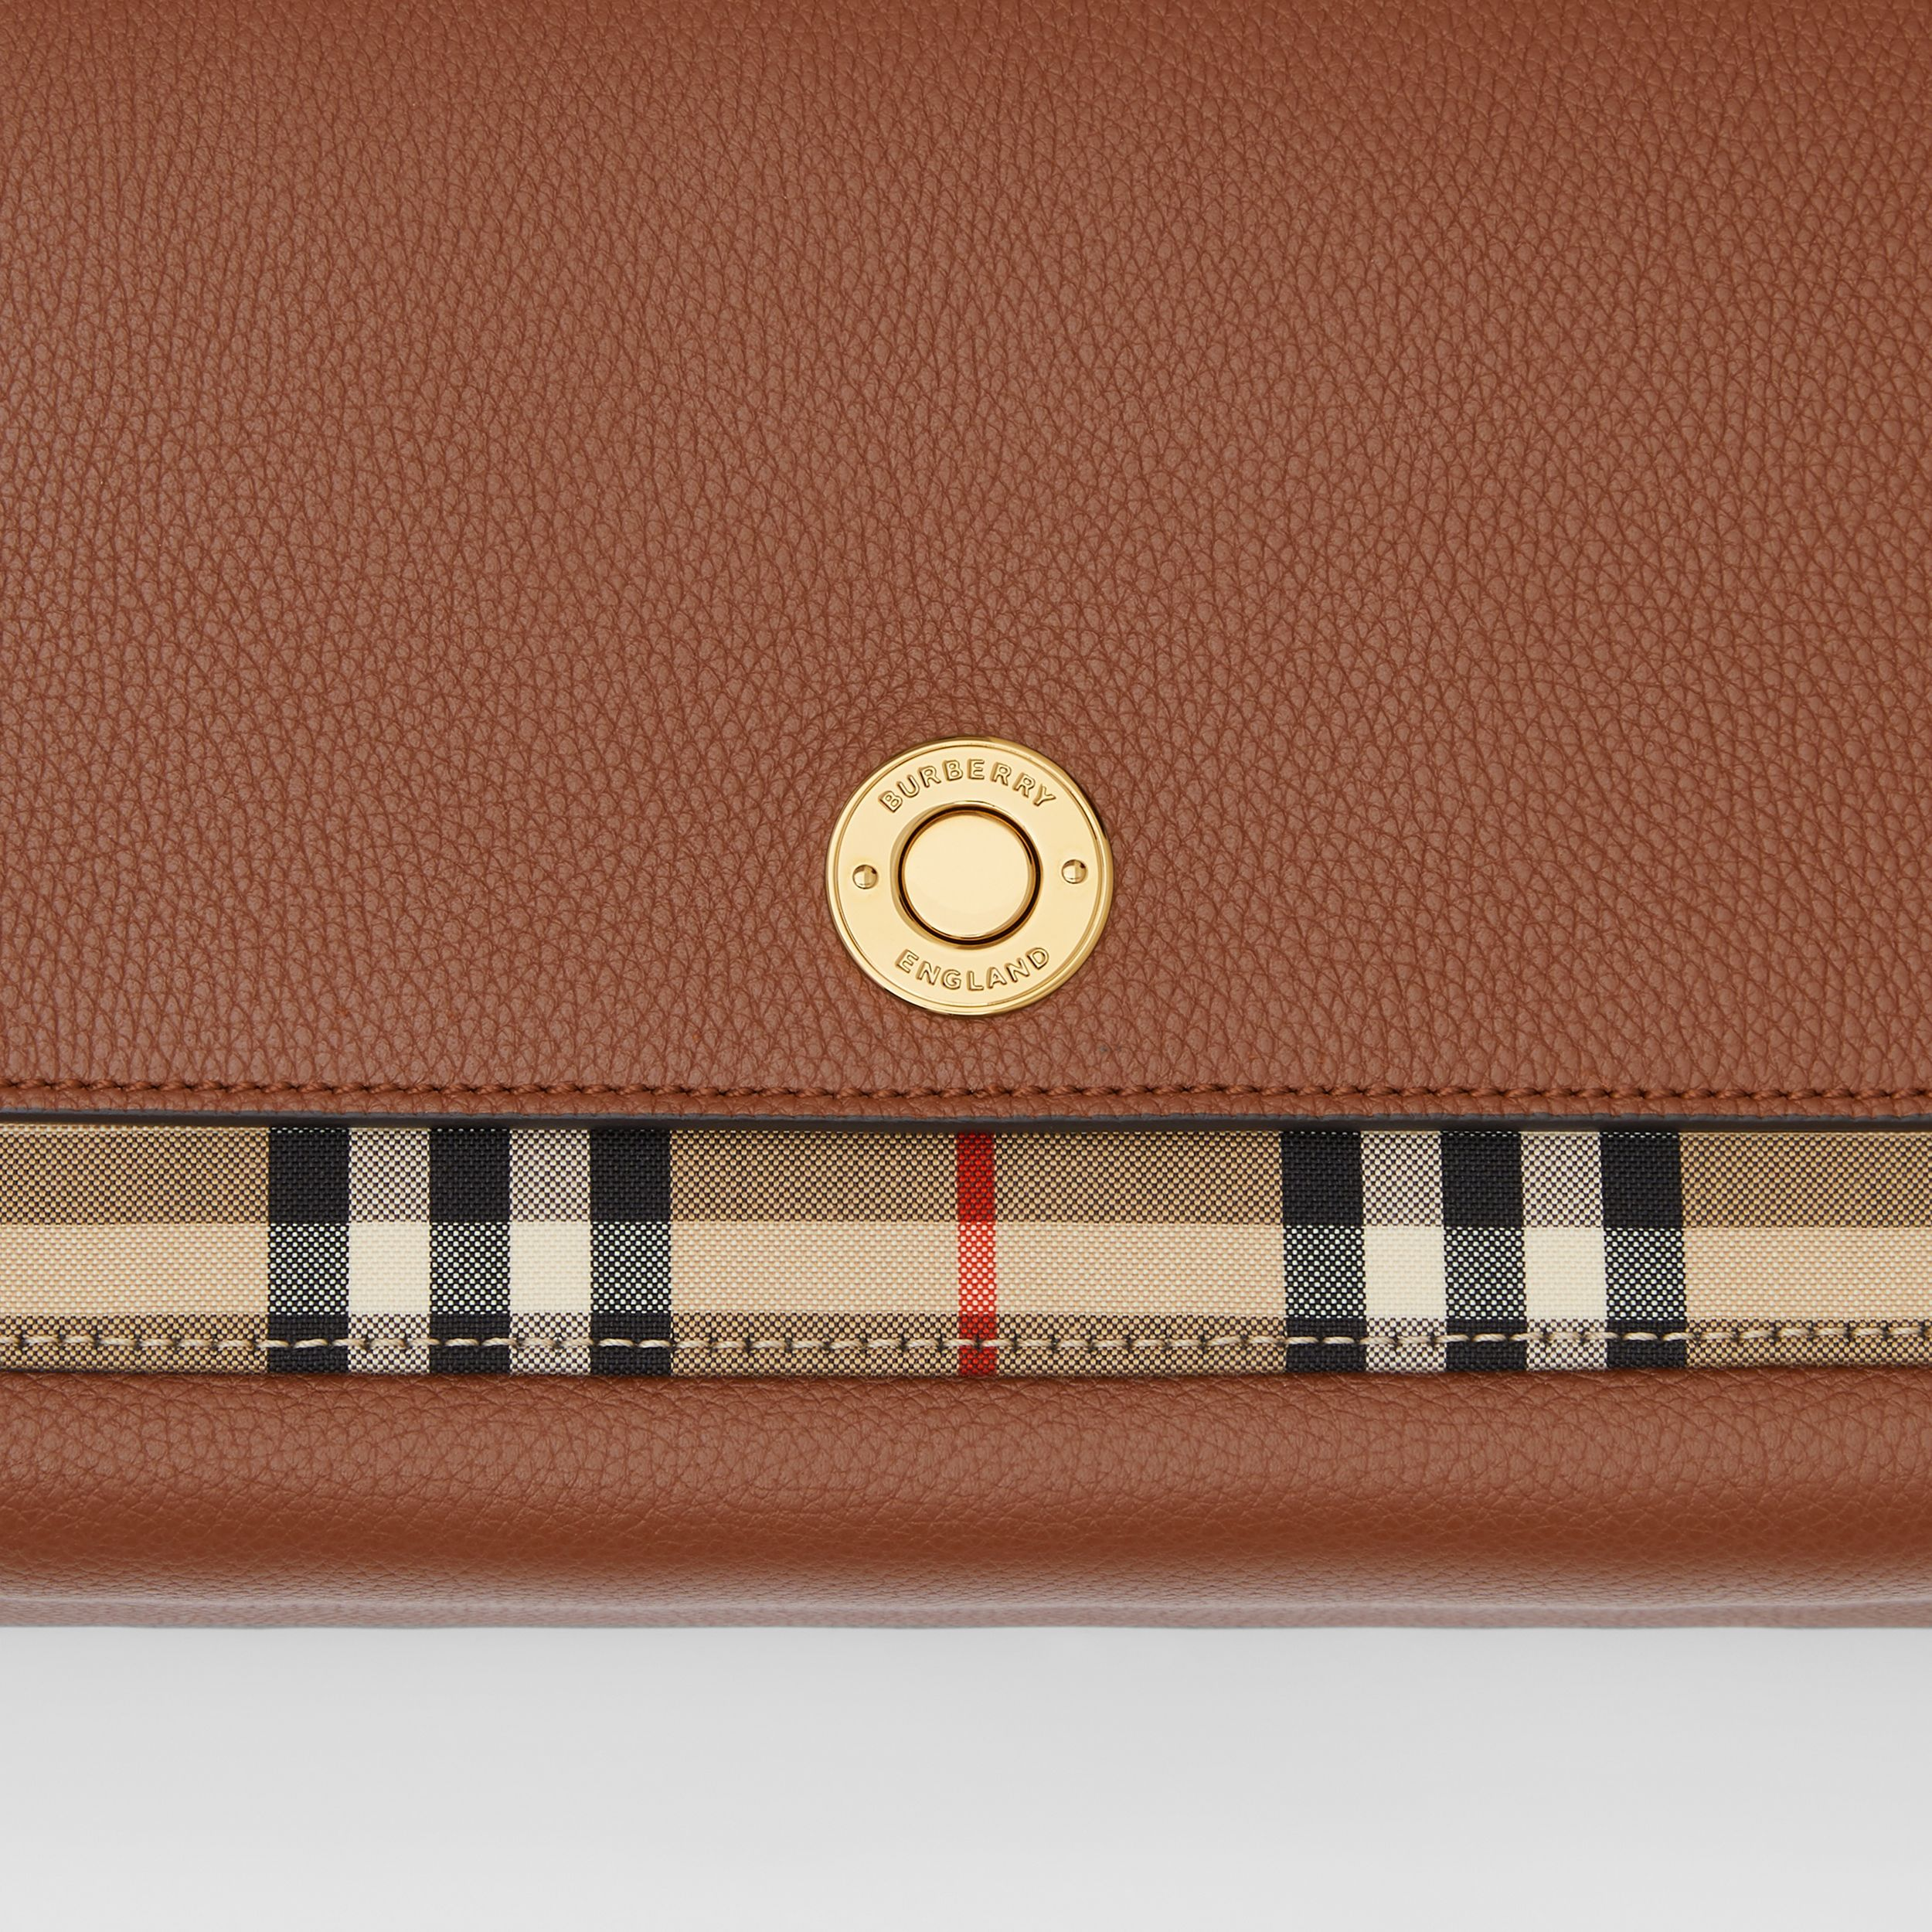 Leather and Vintage Check Note Crossbody Bag in Tan | Burberry - 2